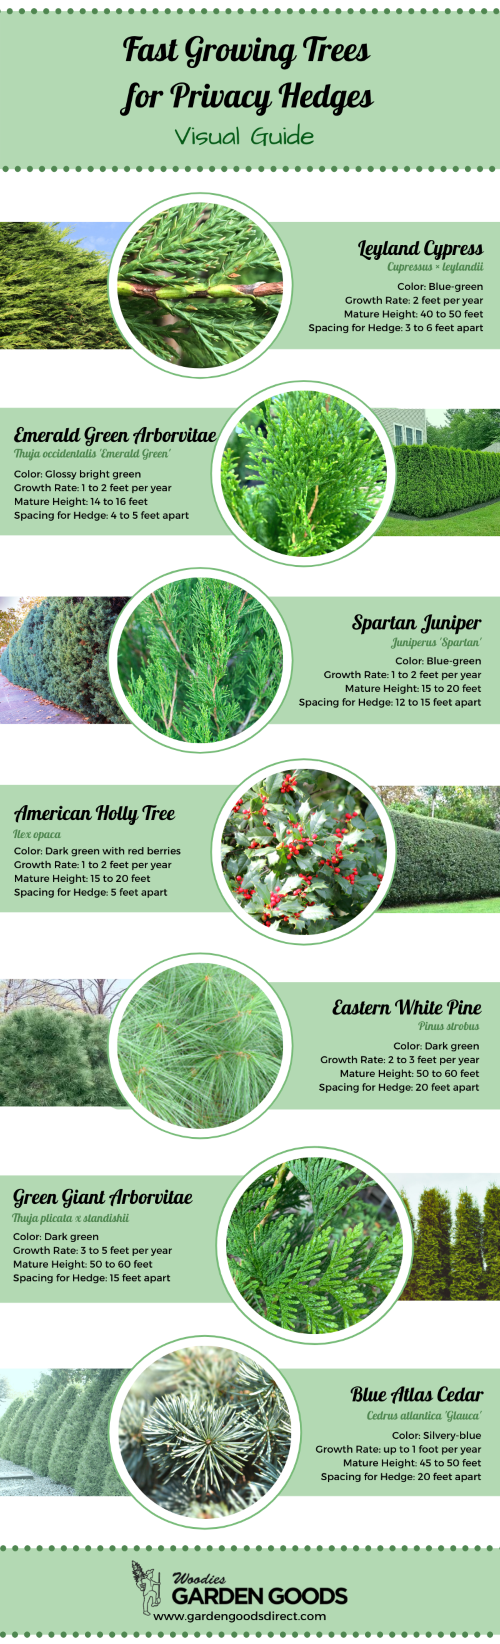 visual guide of fast growing trees for a privacy hedge